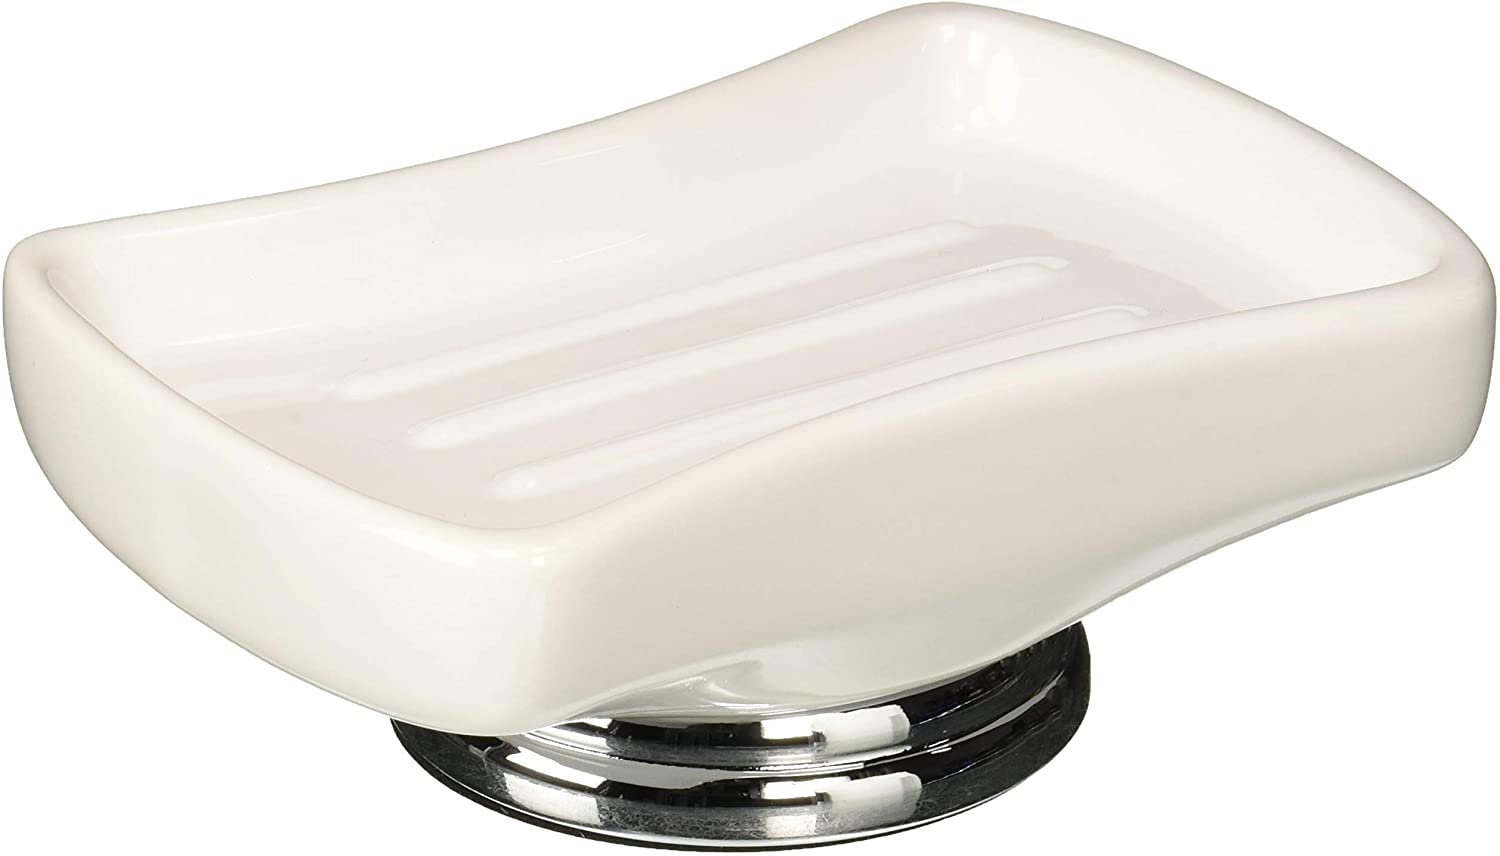 nu steel SH3H Sag Harbor Collection Saver, Kitchen and Bathroom Soap Dish Tray Finish, White Ceramic/Chrome Trim